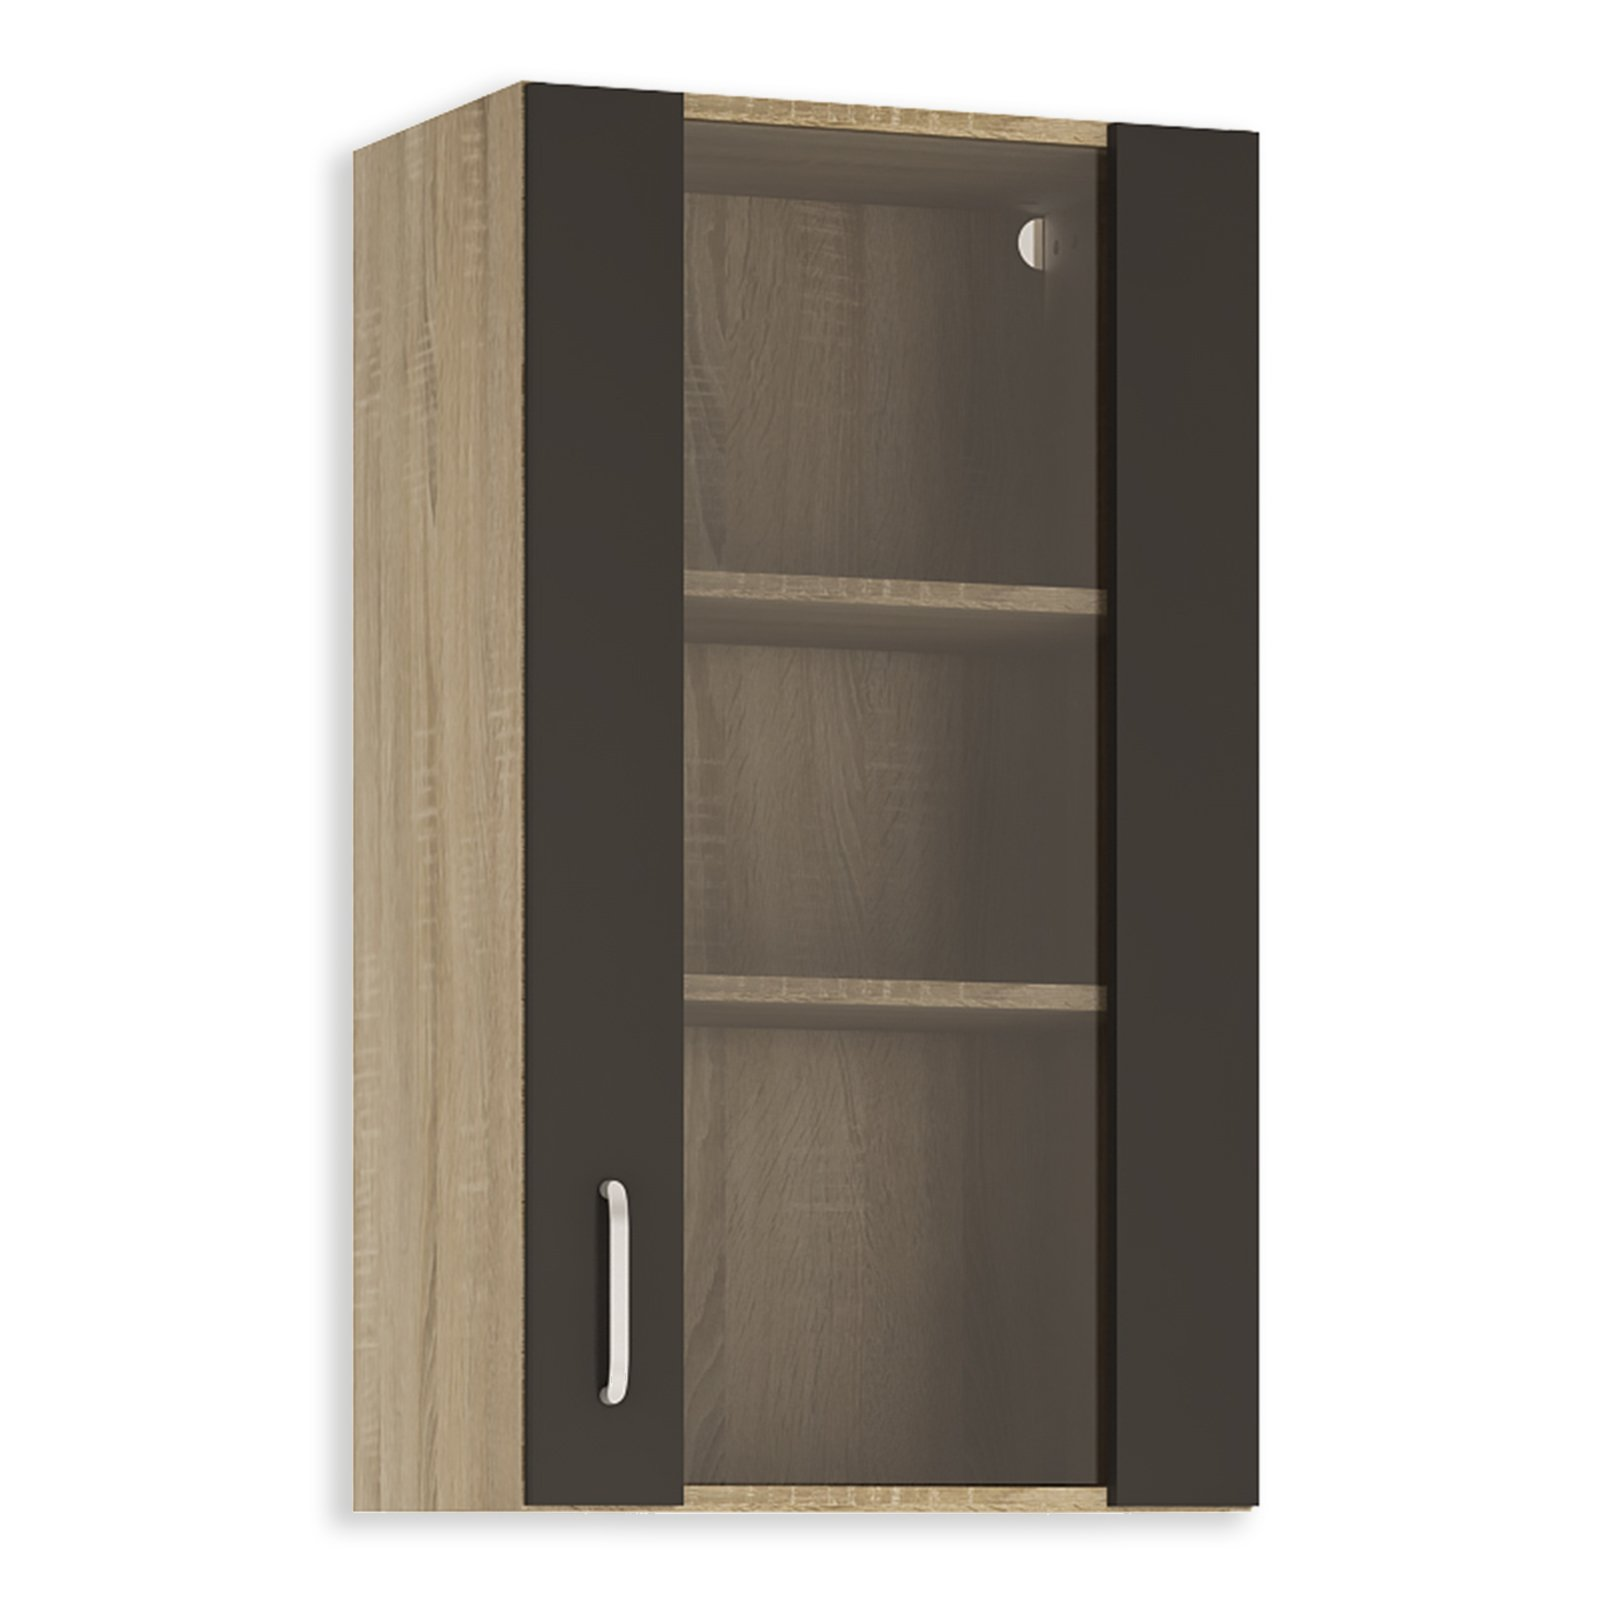 glash ngeschrank fox anthrazit sonoma eiche 50 cm breit h ngeschr nke einzelschr nke. Black Bedroom Furniture Sets. Home Design Ideas